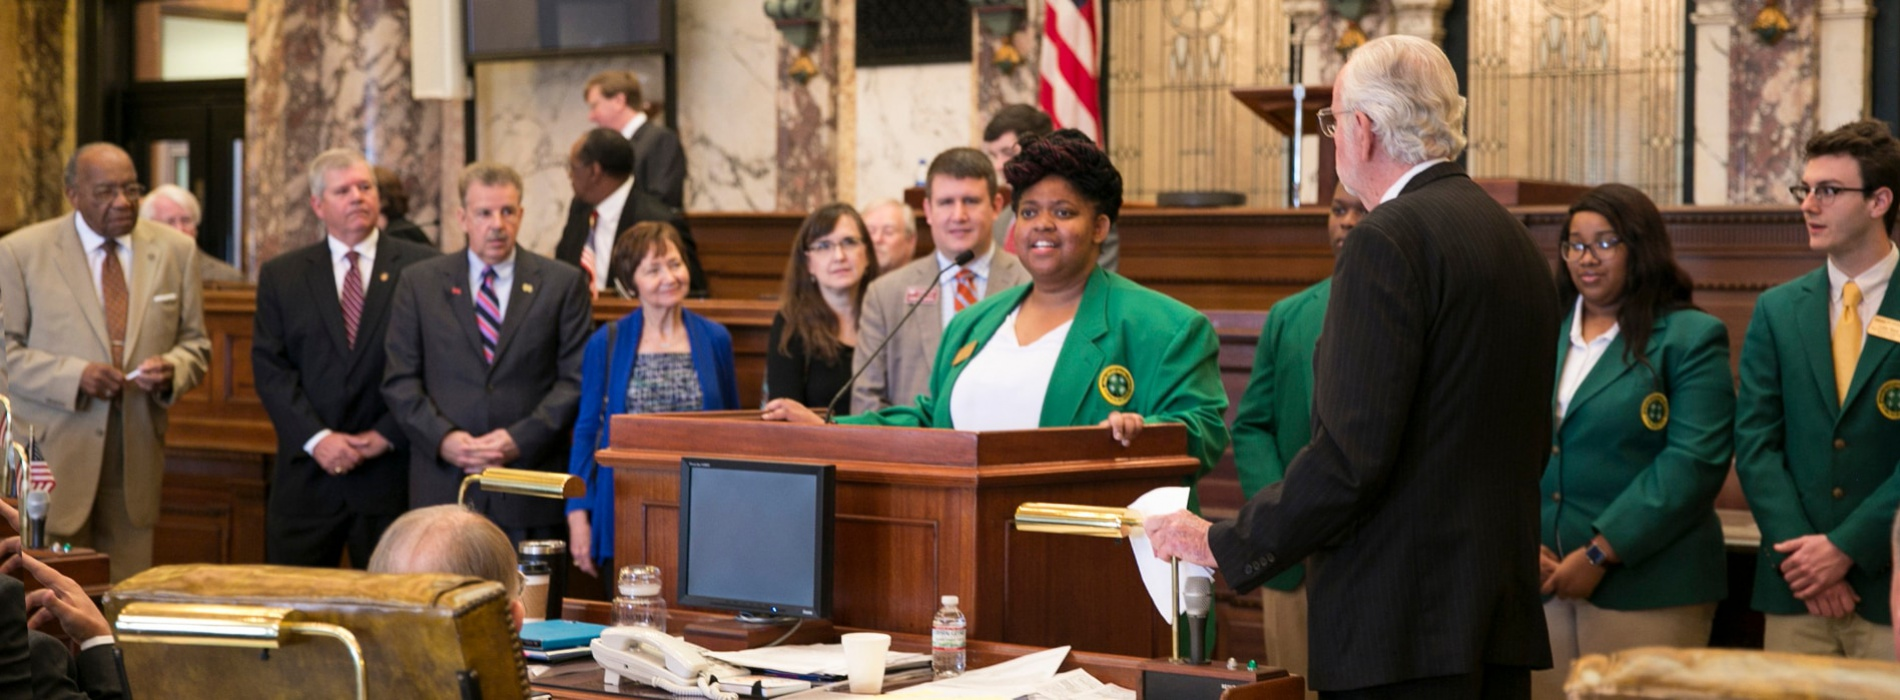 A 4-H youth addresses a congregation surrounded by her peers.